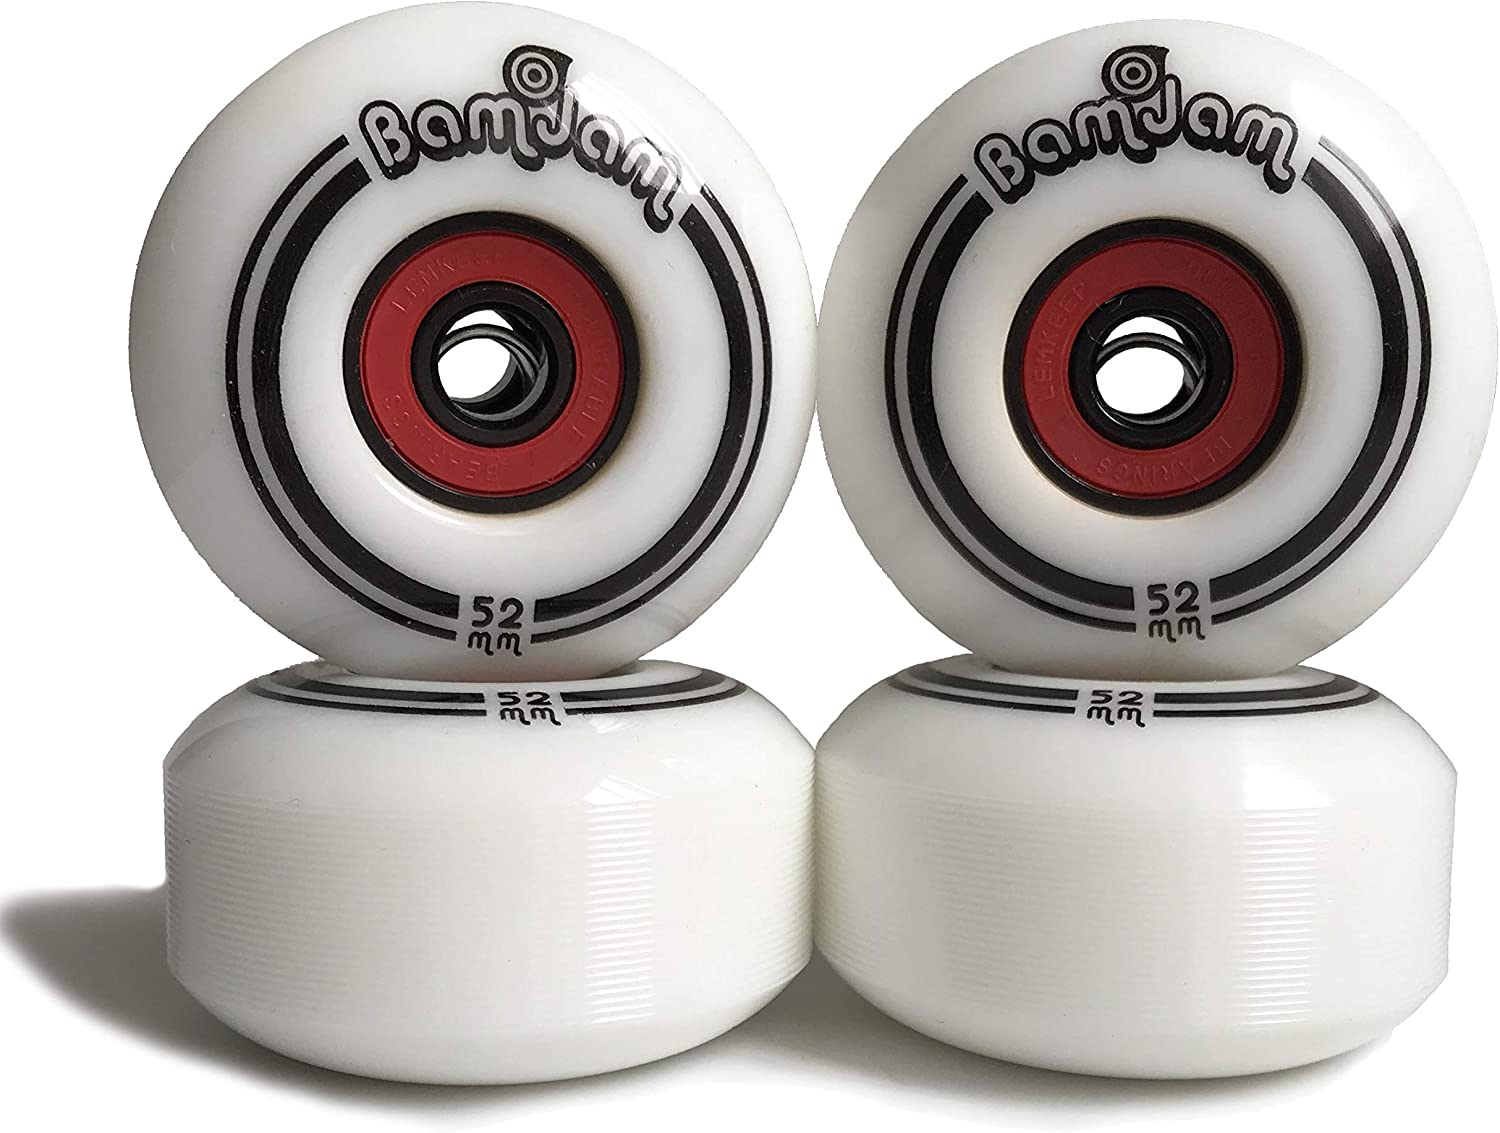 Skateboard Wheels - 4 pcs Set inch Challenge the lowest price of Japan ☆ White Professional Sale SALE% OFF 52mm 2.1